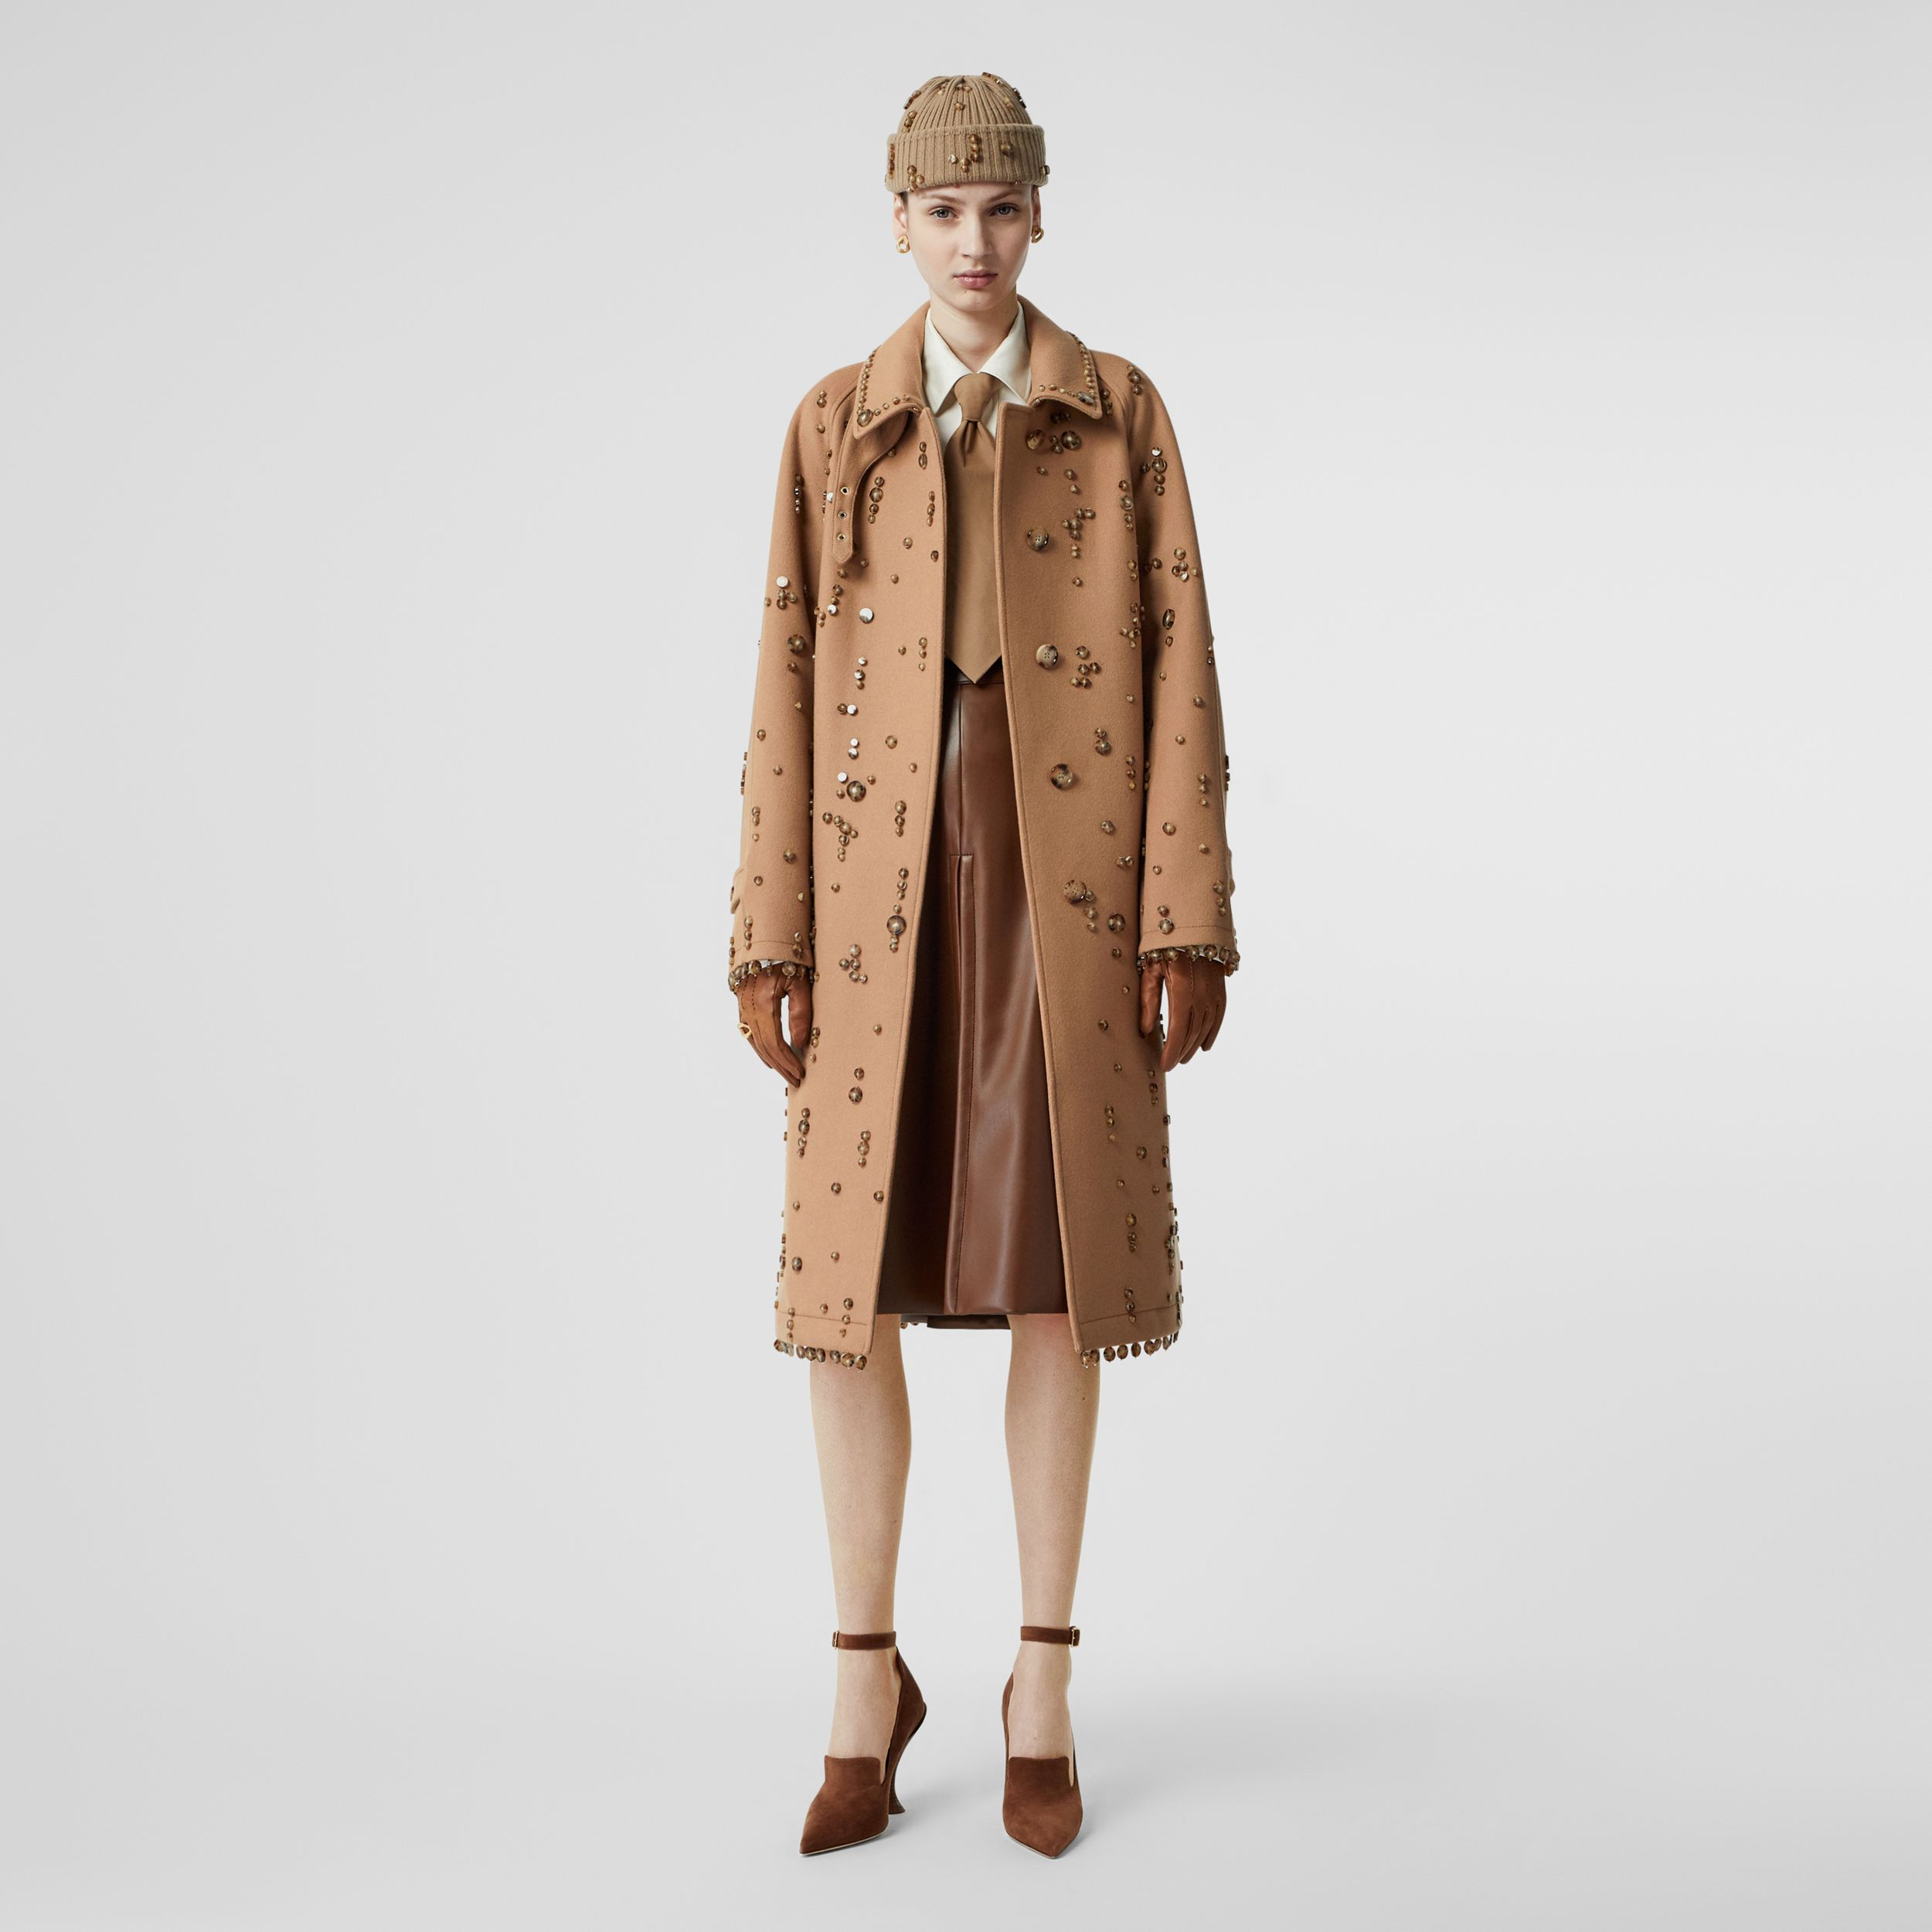 Embellished Wool Cashmere Car Coat in Camel - Women | Burberry - 1